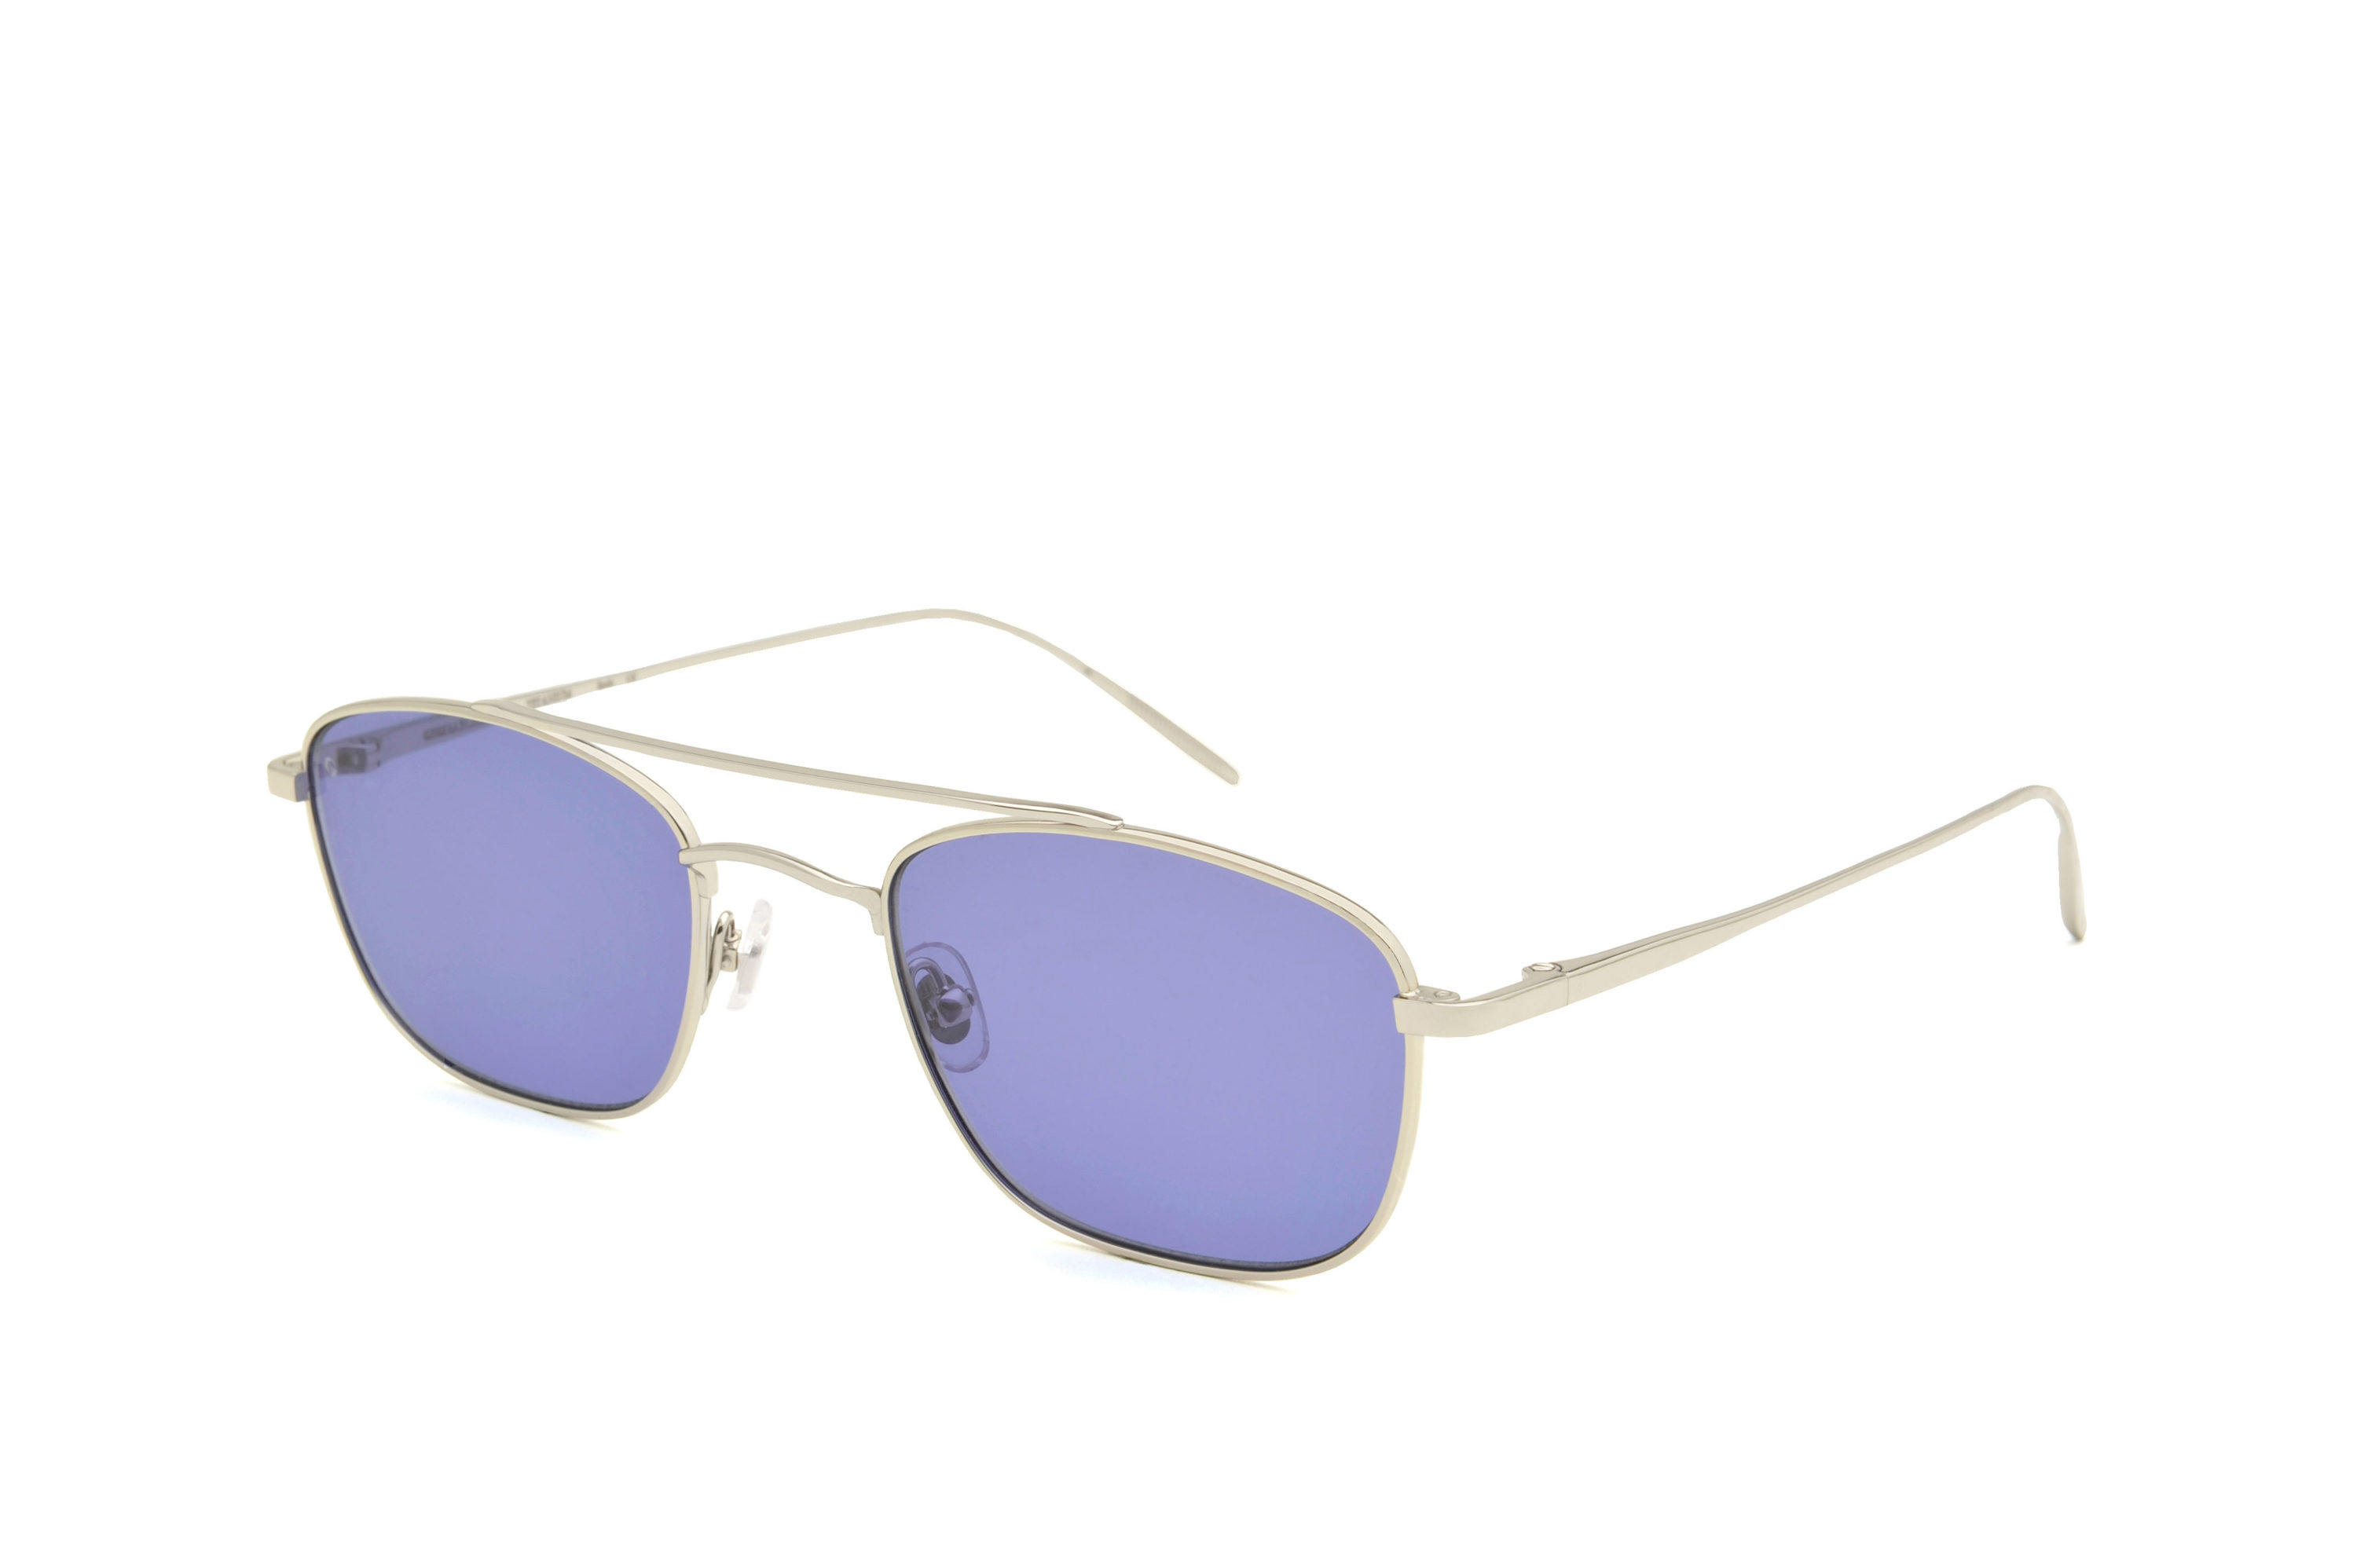 New York metal aviator silver sunglasses by GIGI Studios